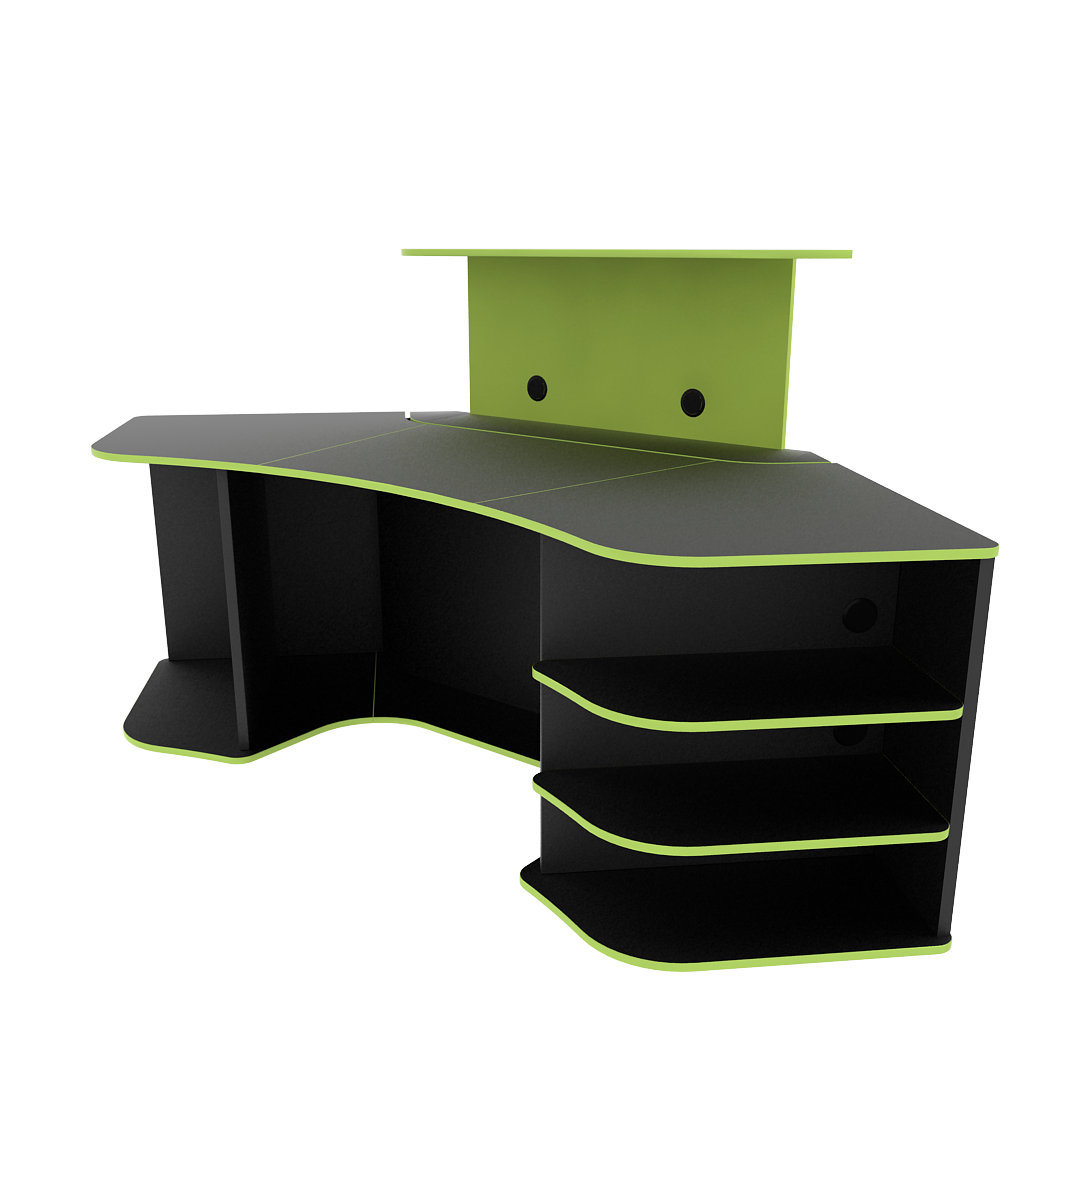 Pin by noah kathrein pollack on h stylish u ingenious table u desk